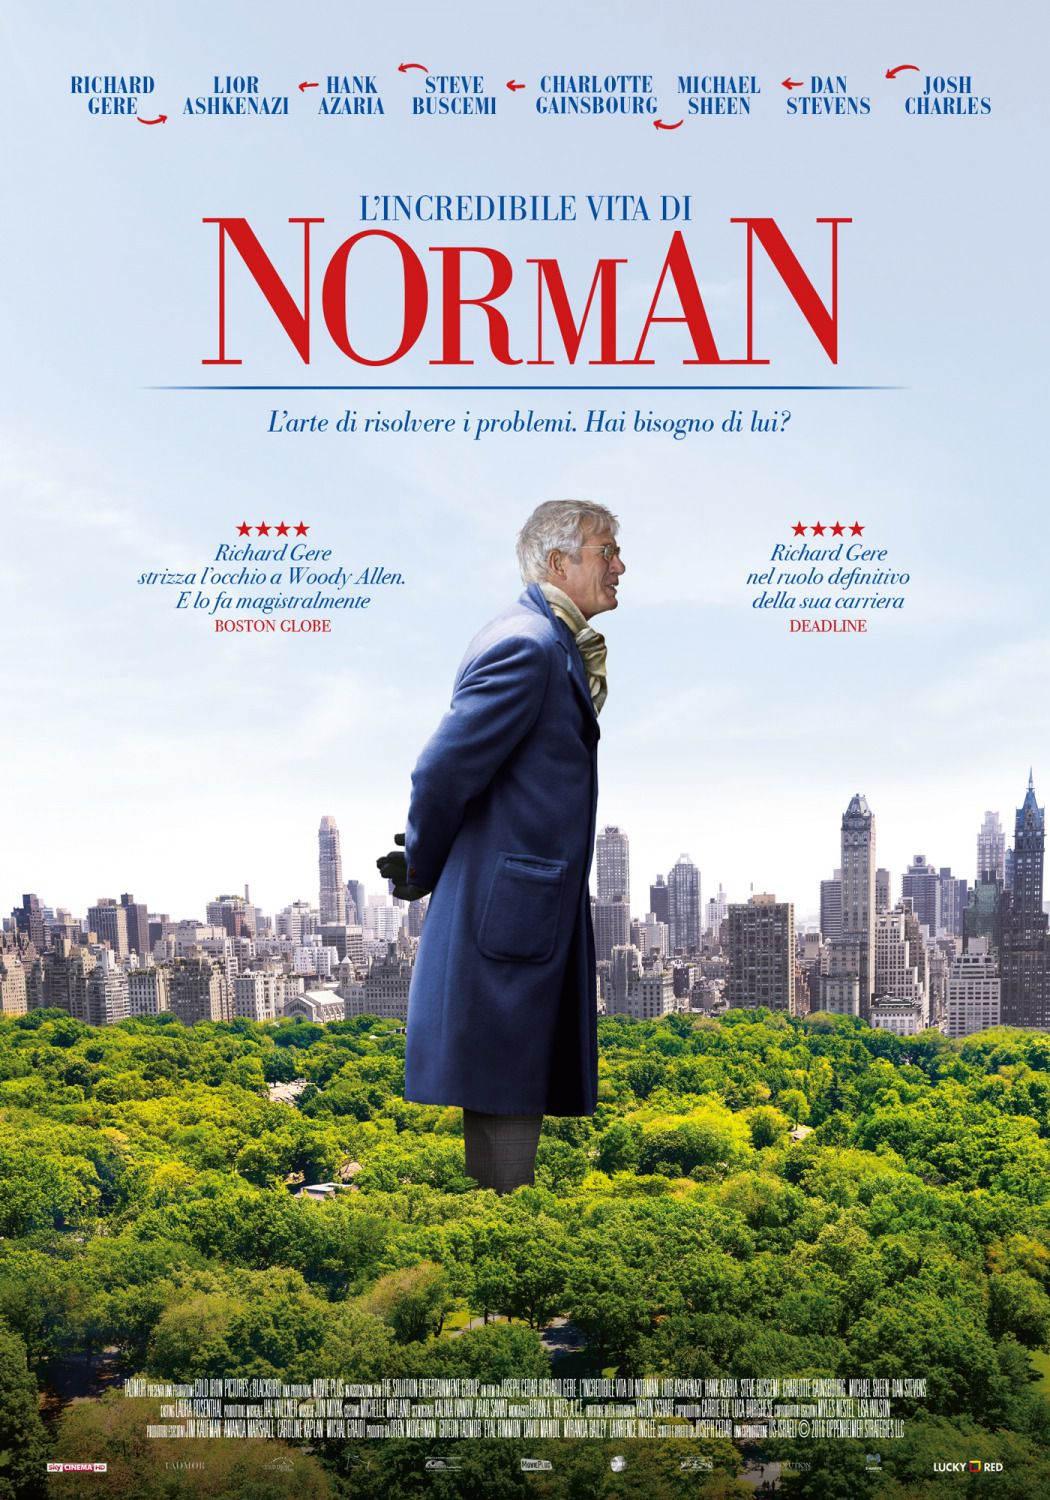 Norman - Richard Gere